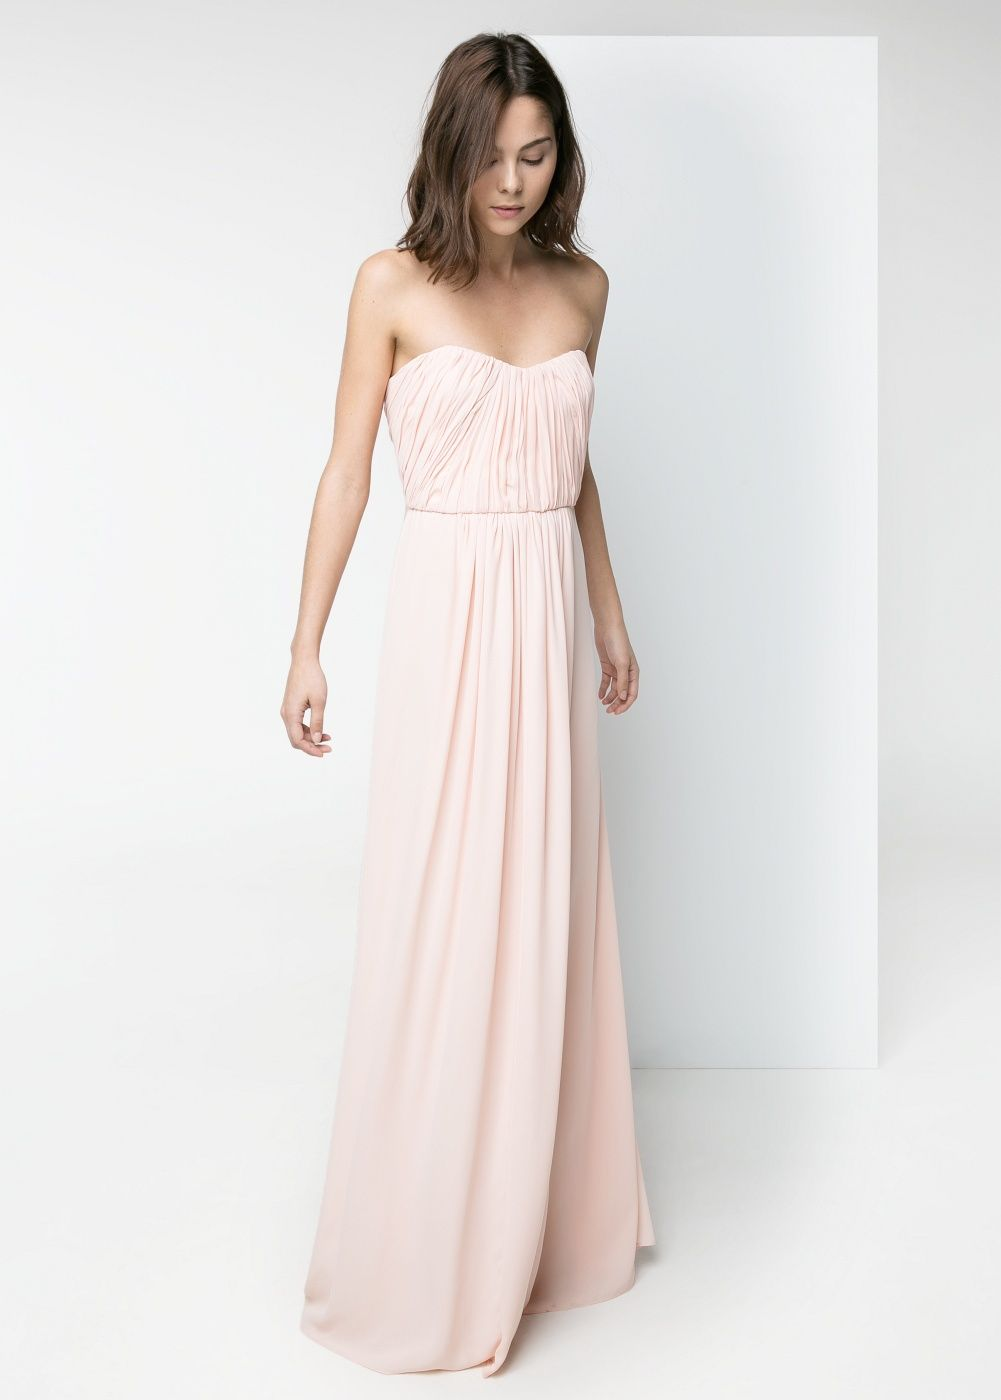 Contrast heel sandals robes gowns and mango contrast heel sandals gown dressmangonecklinebridesmaid ombrellifo Image collections